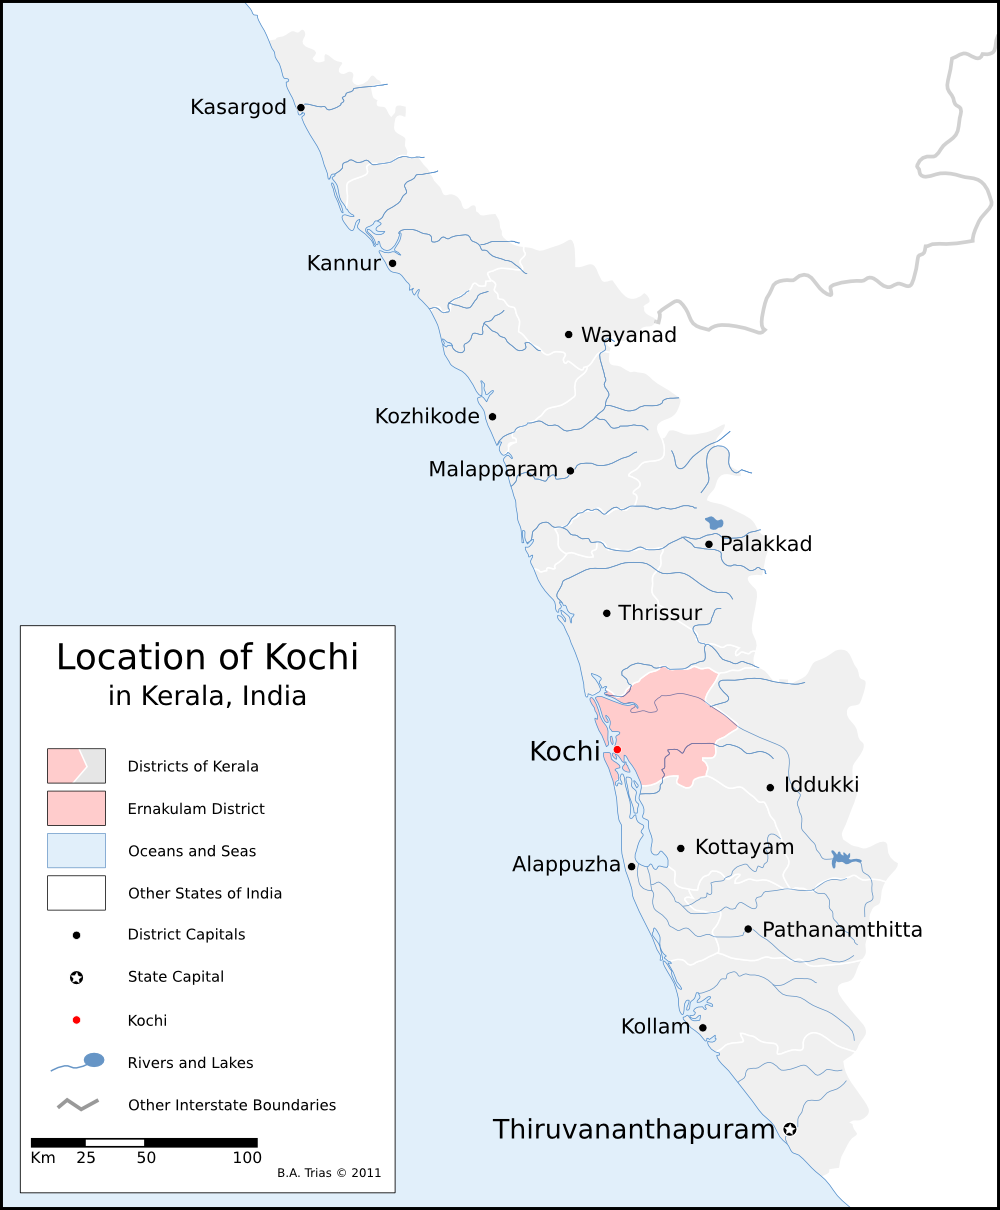 Location of Kochi in Kerala India